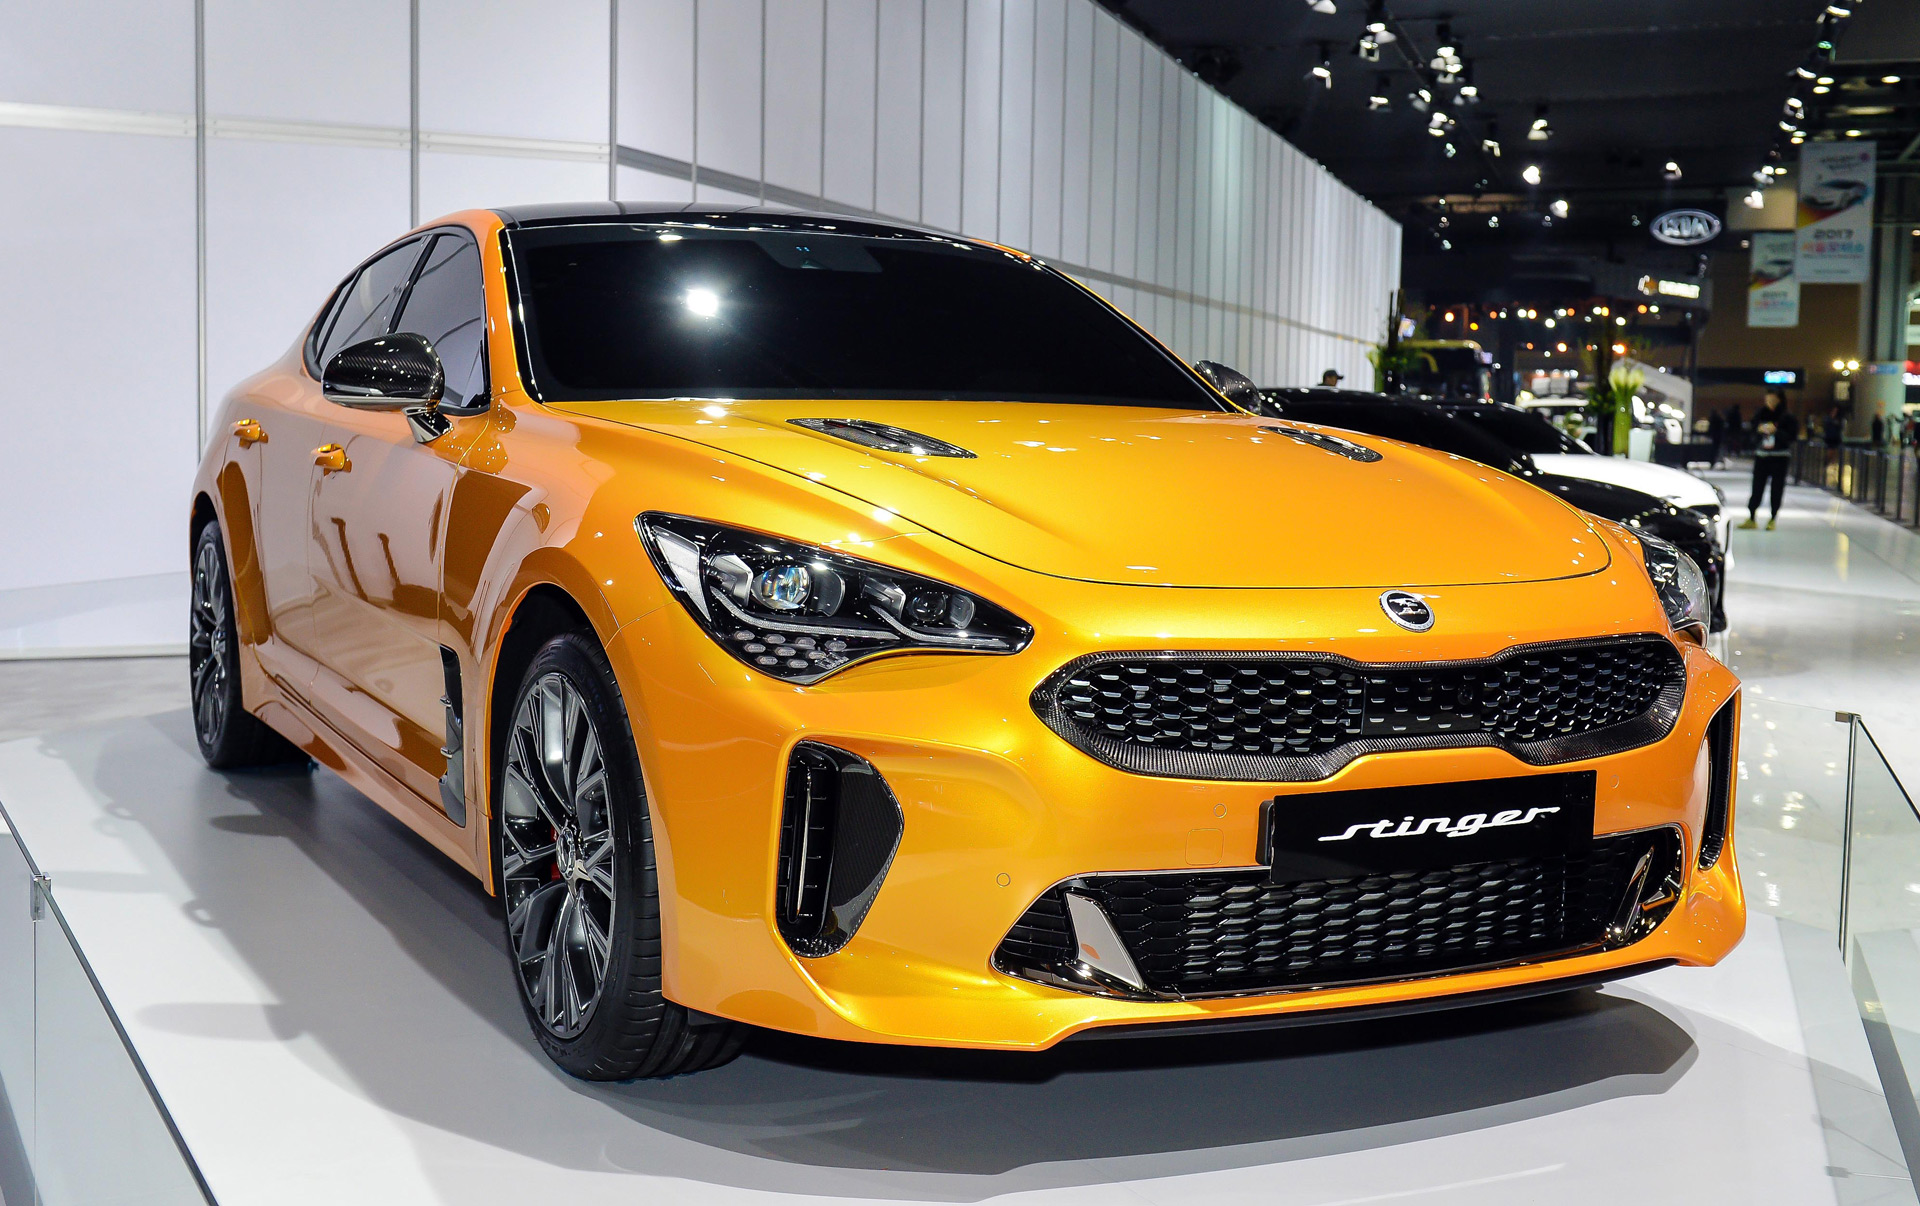 Kia Stinger 0-60 time under 4.9 seconds